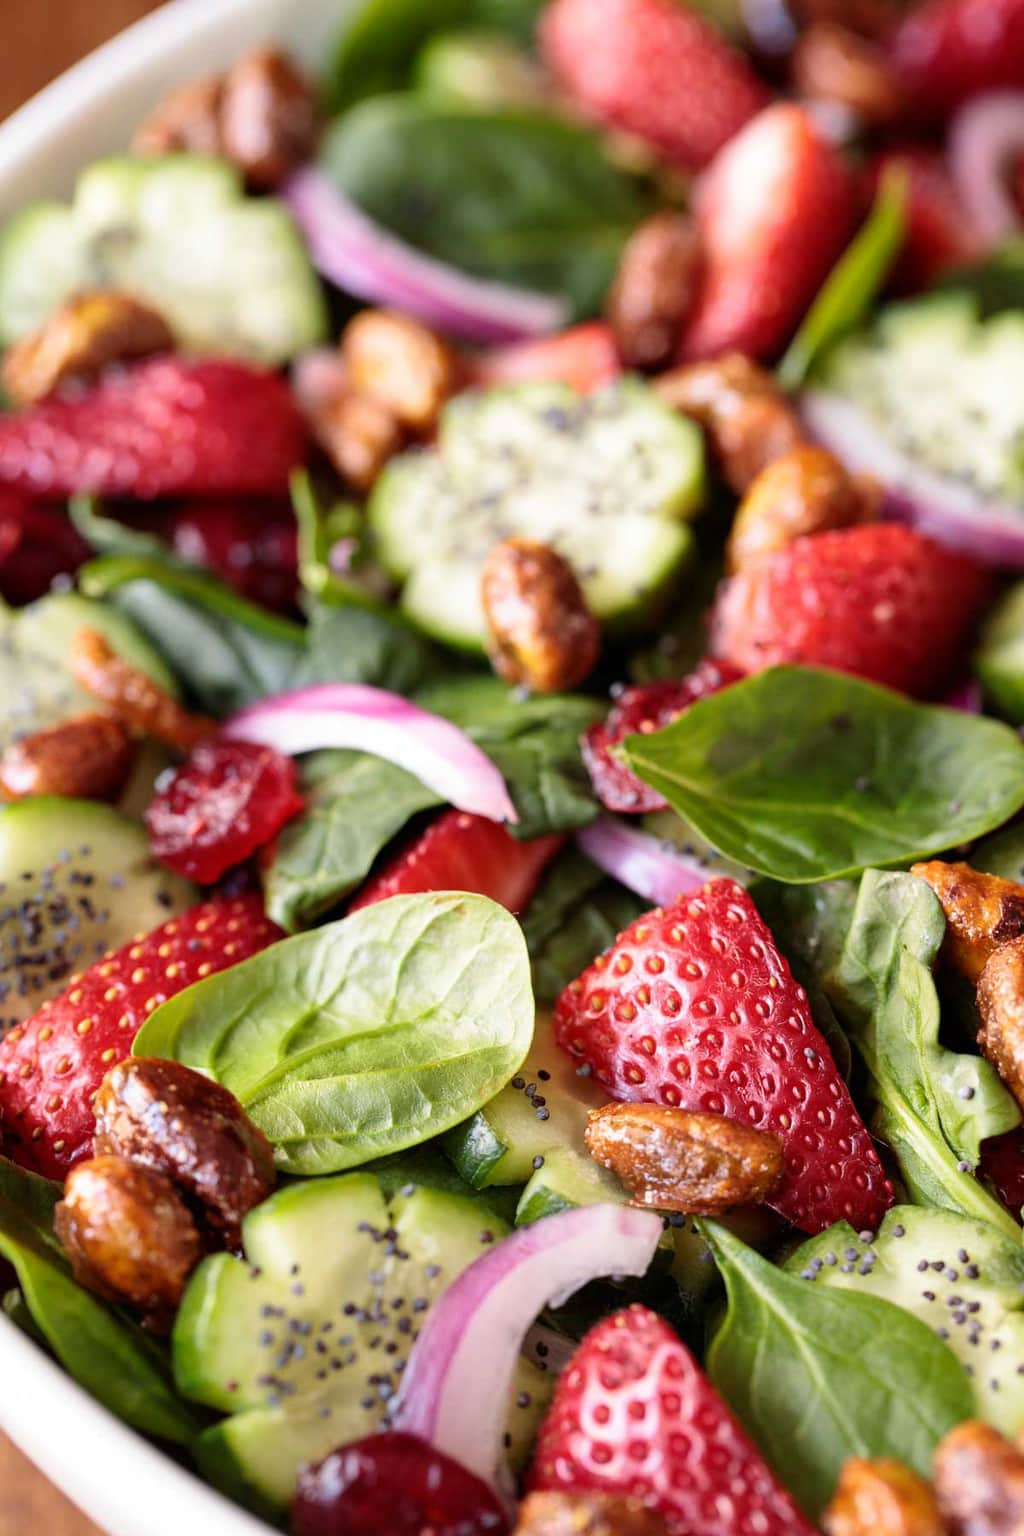 Closeup photo of a bowl filled with Strawberry Spinach Salad.